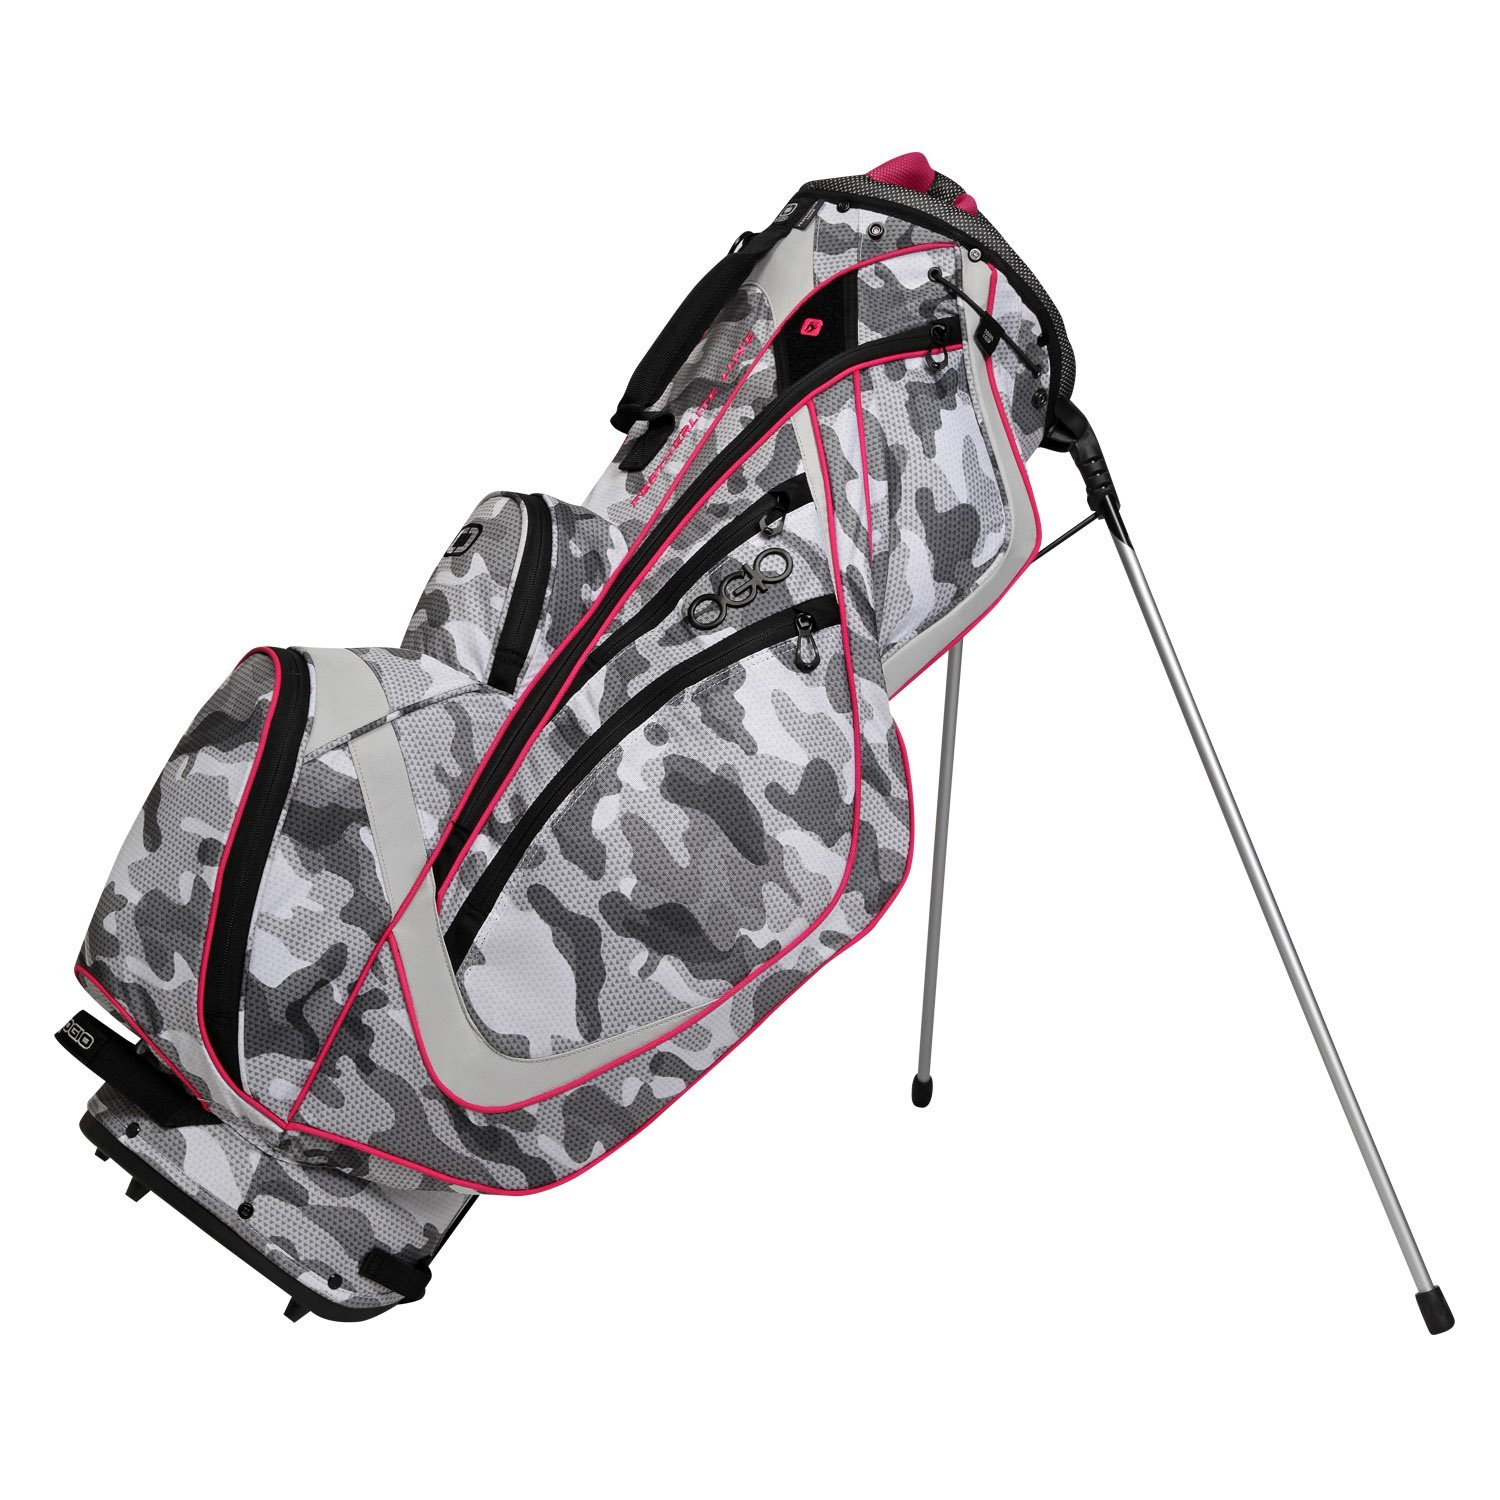 Womens Ogio Featherlite Luxe Golf Stand Bags